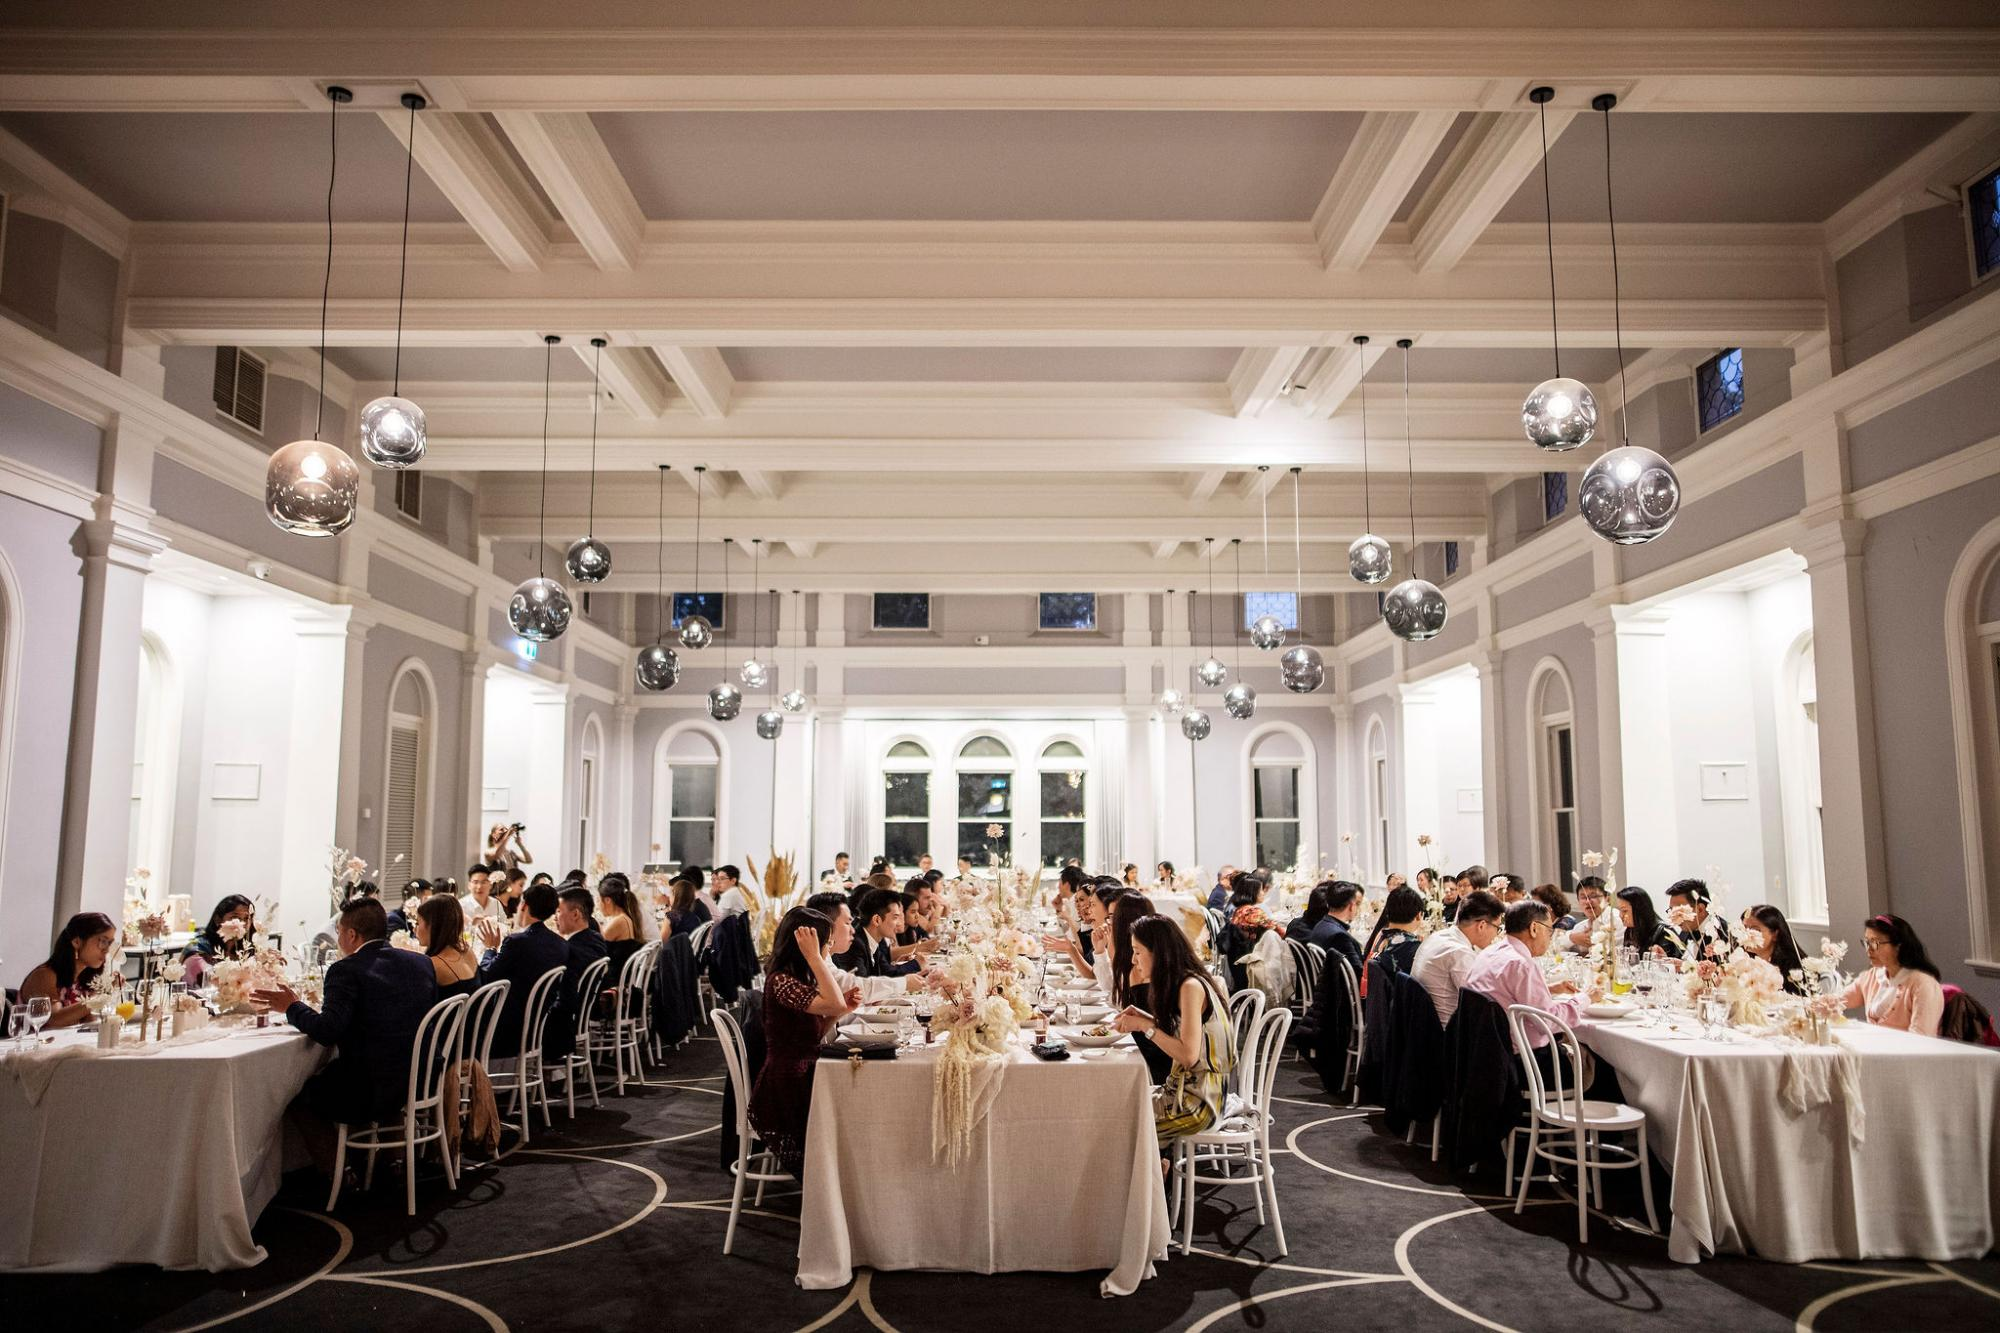 Wedding reception in the Bursaria Refectory at Werribee Mansion